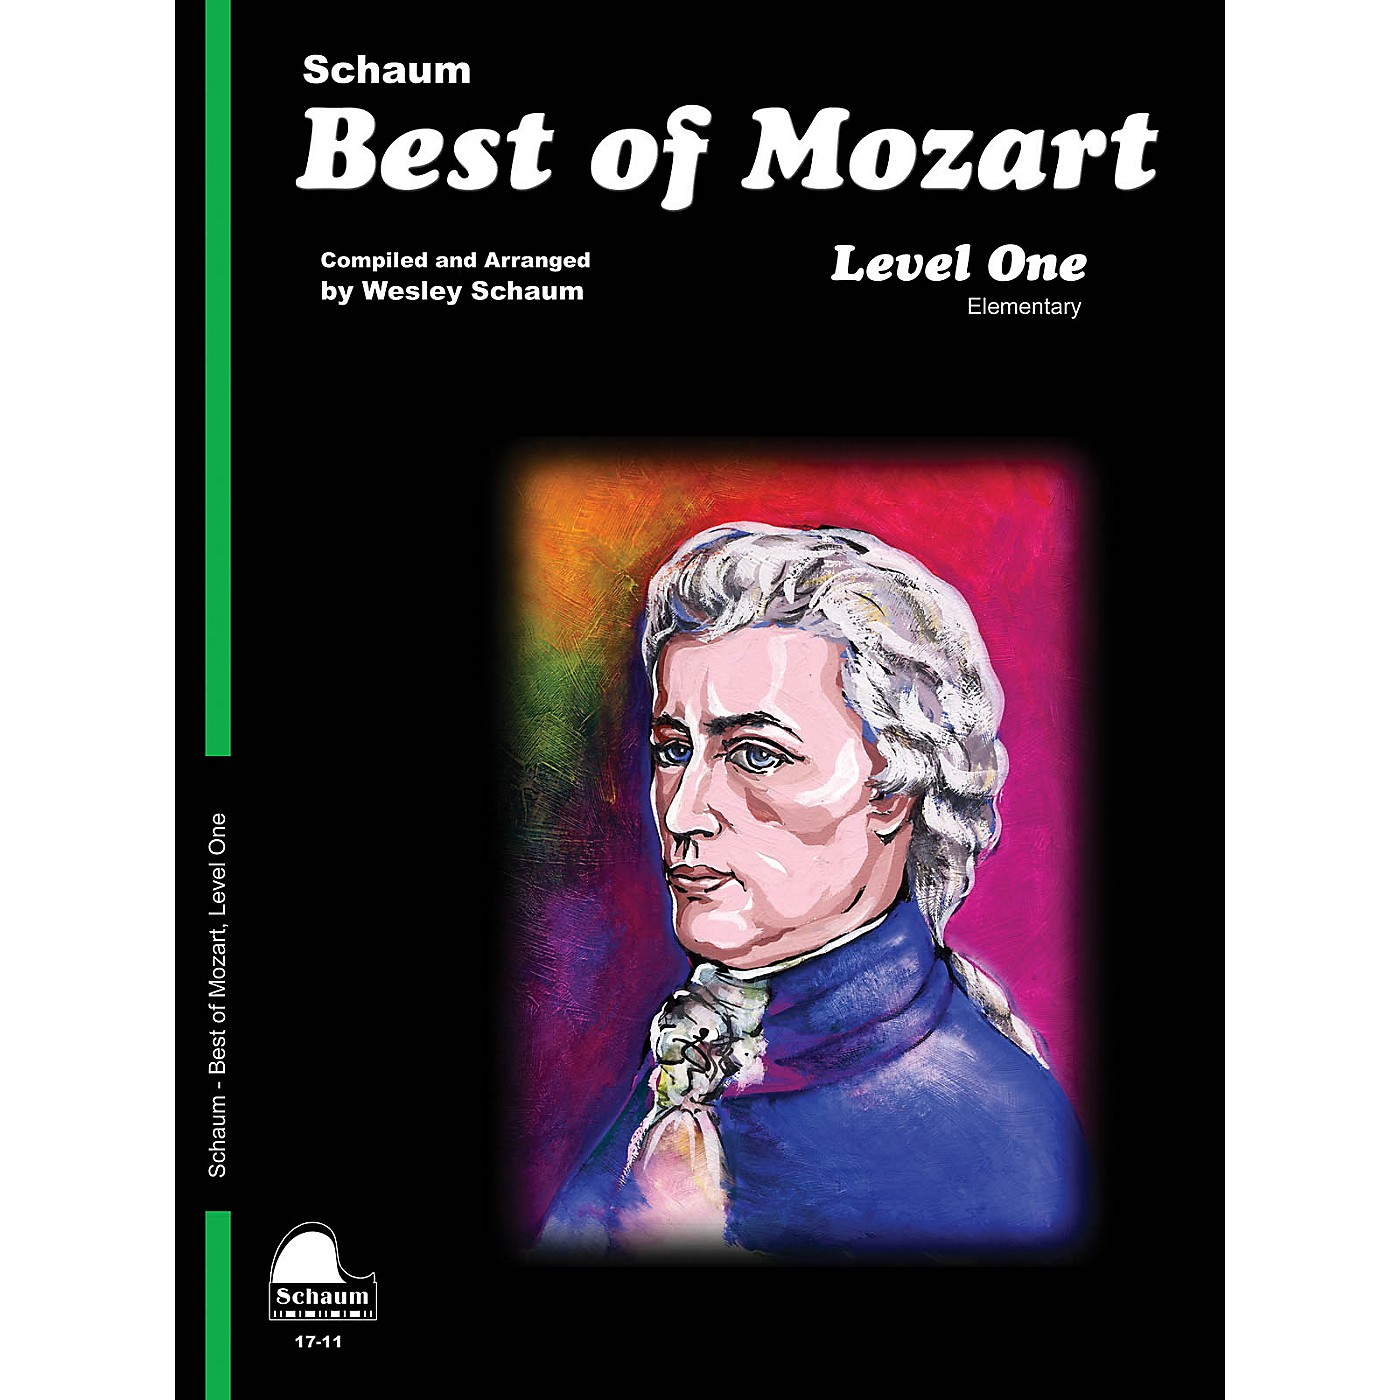 SCHAUM Best of Mozart (Level 1 Elem Level) Educational Piano Book by Wolfgang Amadeus Mozart thumbnail